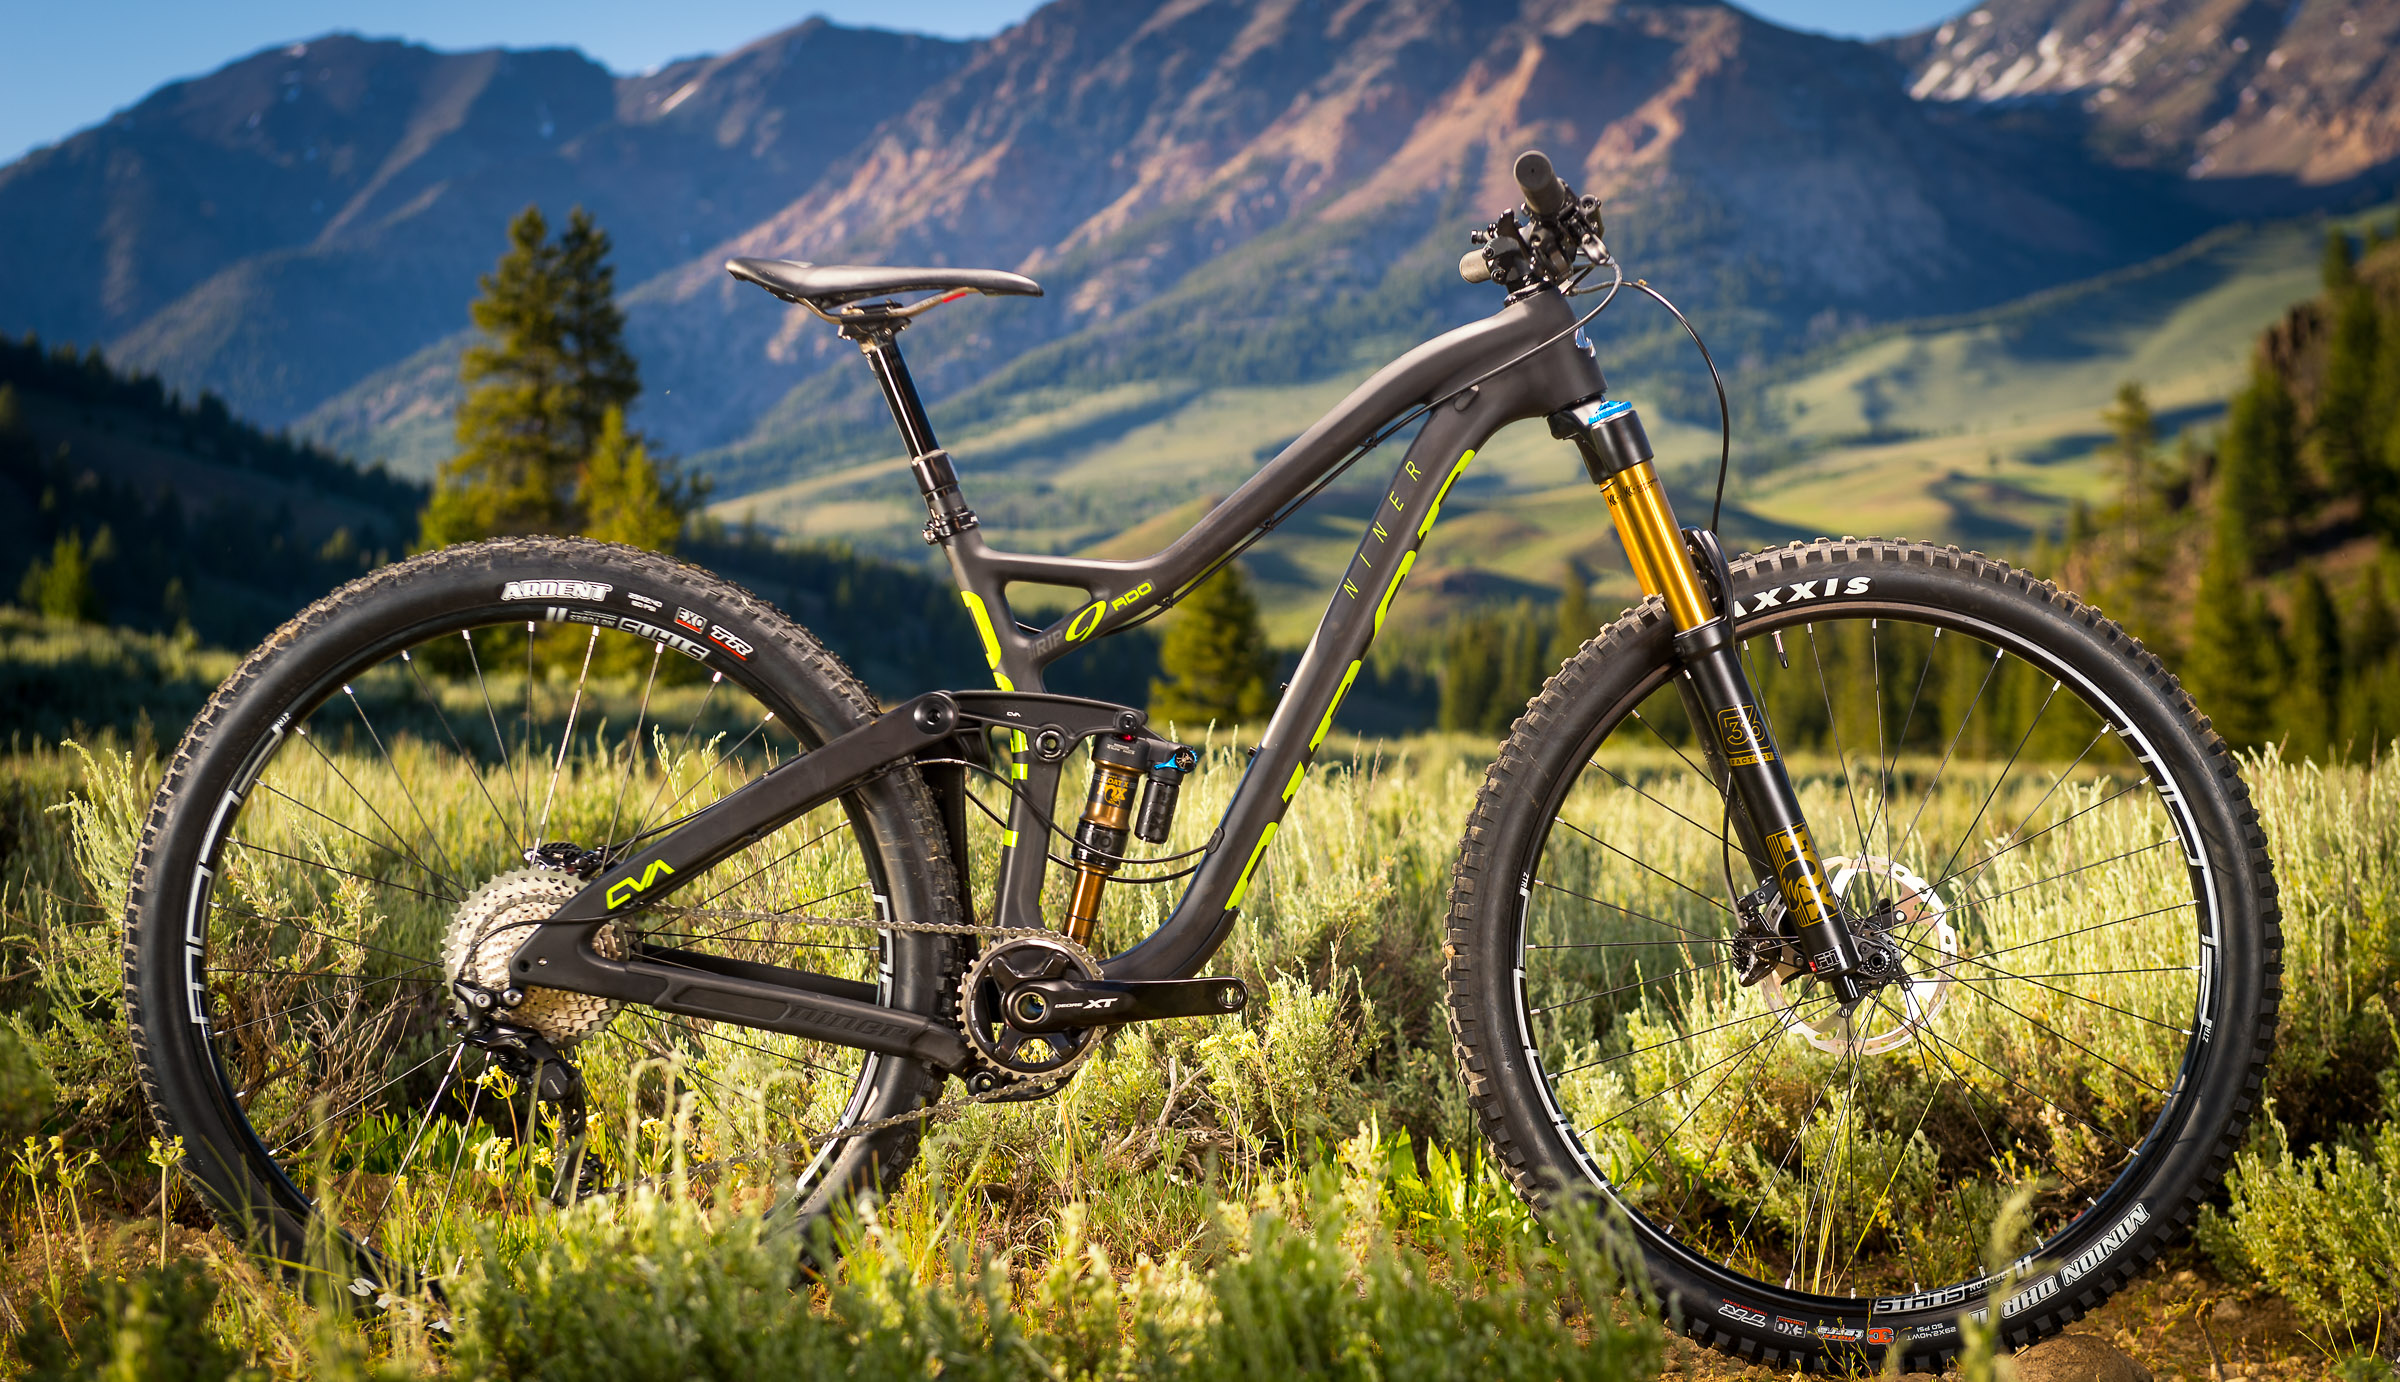 The 29er versions are mated to boost 160mm forks up front, translating to a 67-degree head angle.